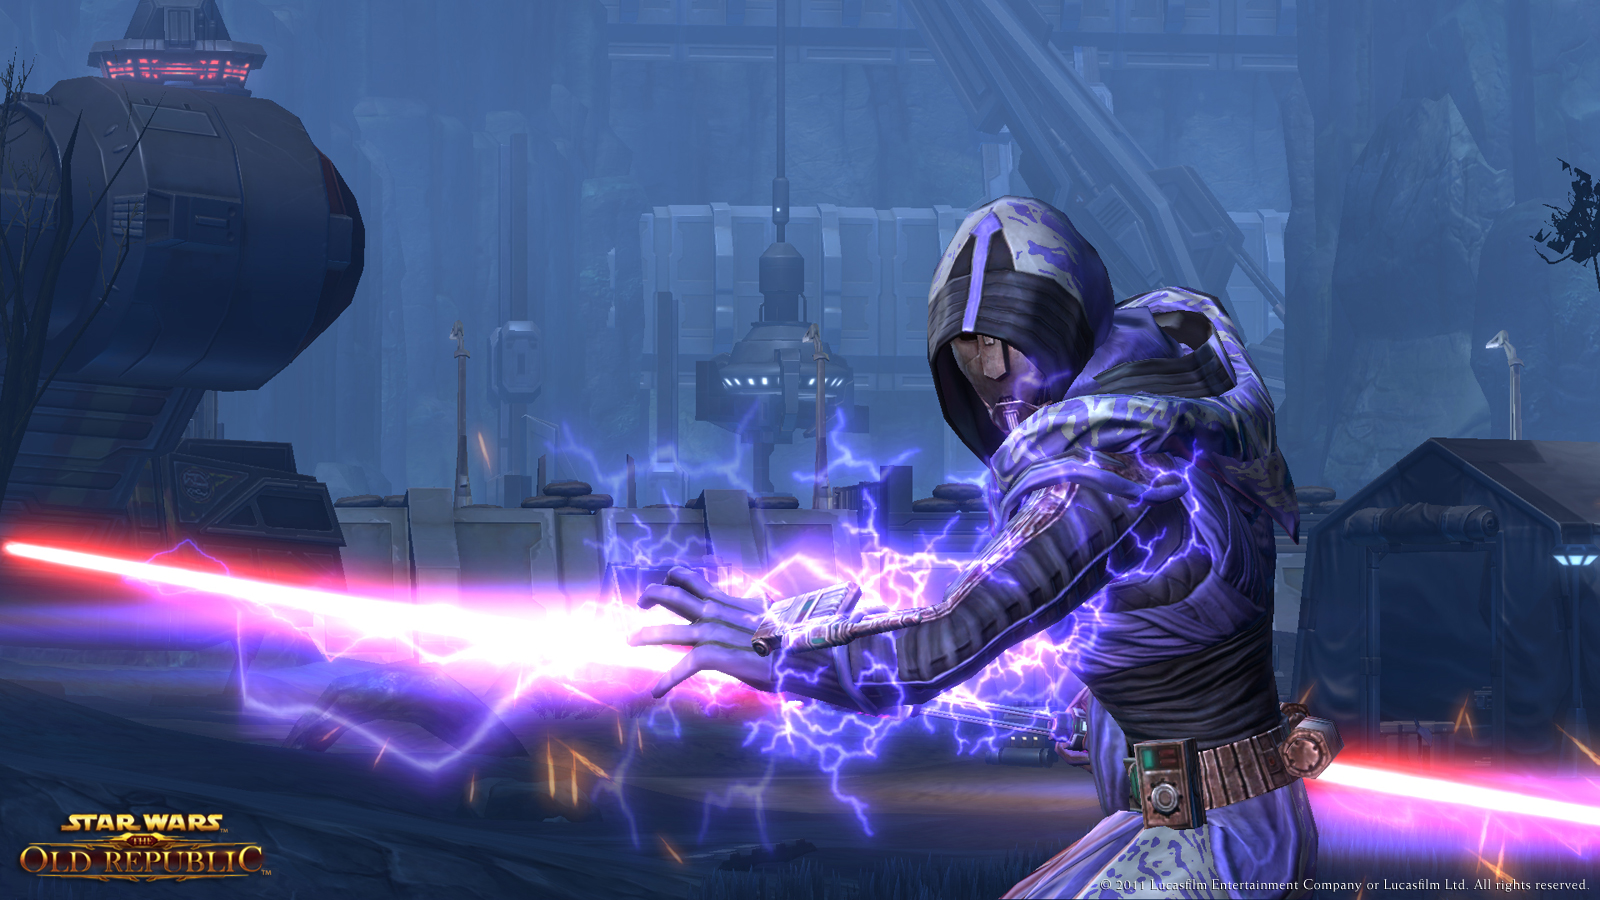 Star Wars: The Old Republic Players Prefer Sith Characters